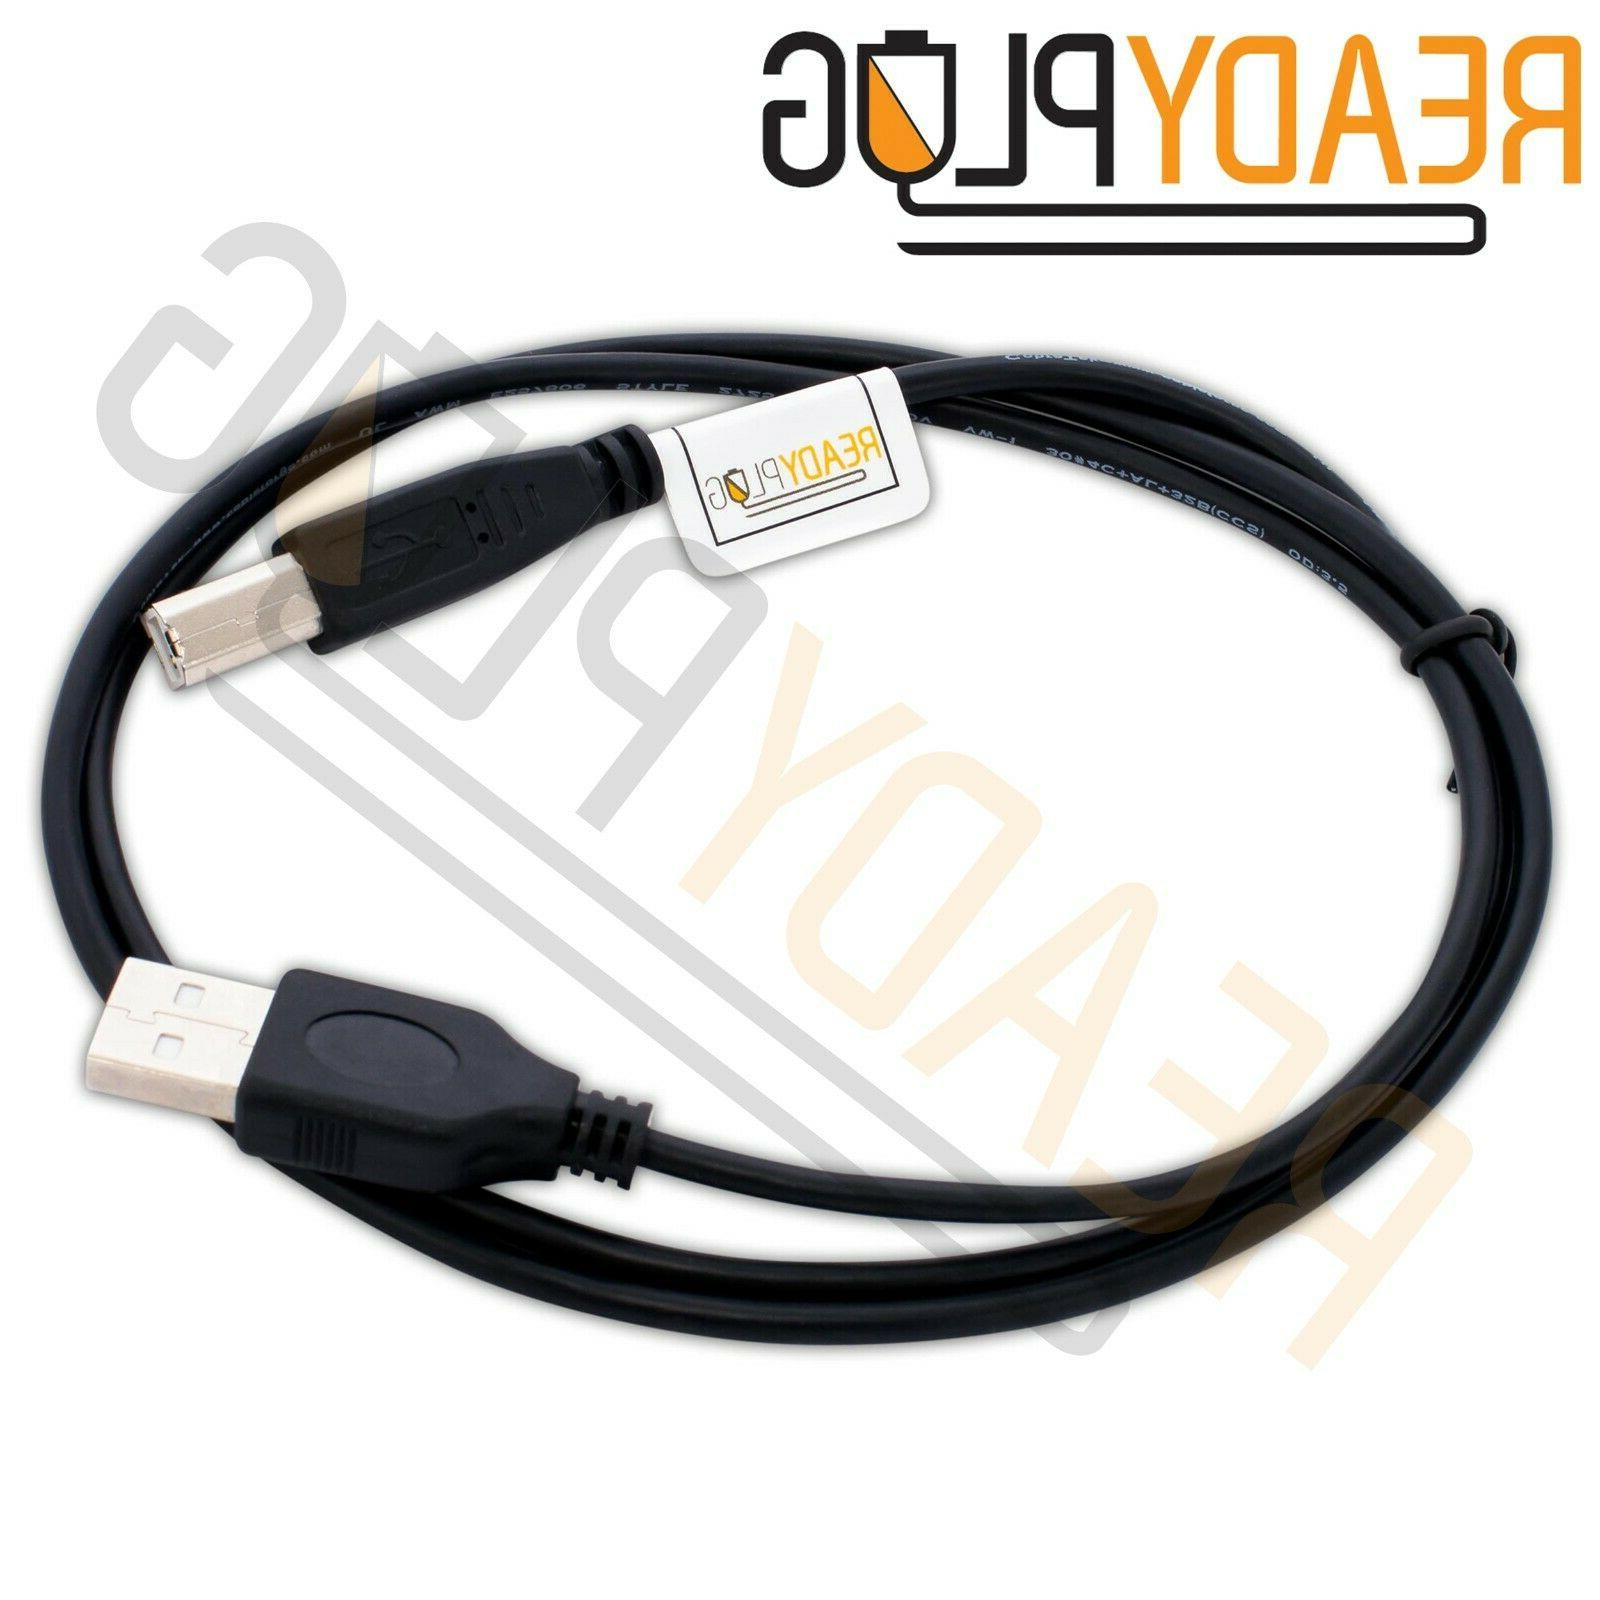 3 ft usb cable for new matter